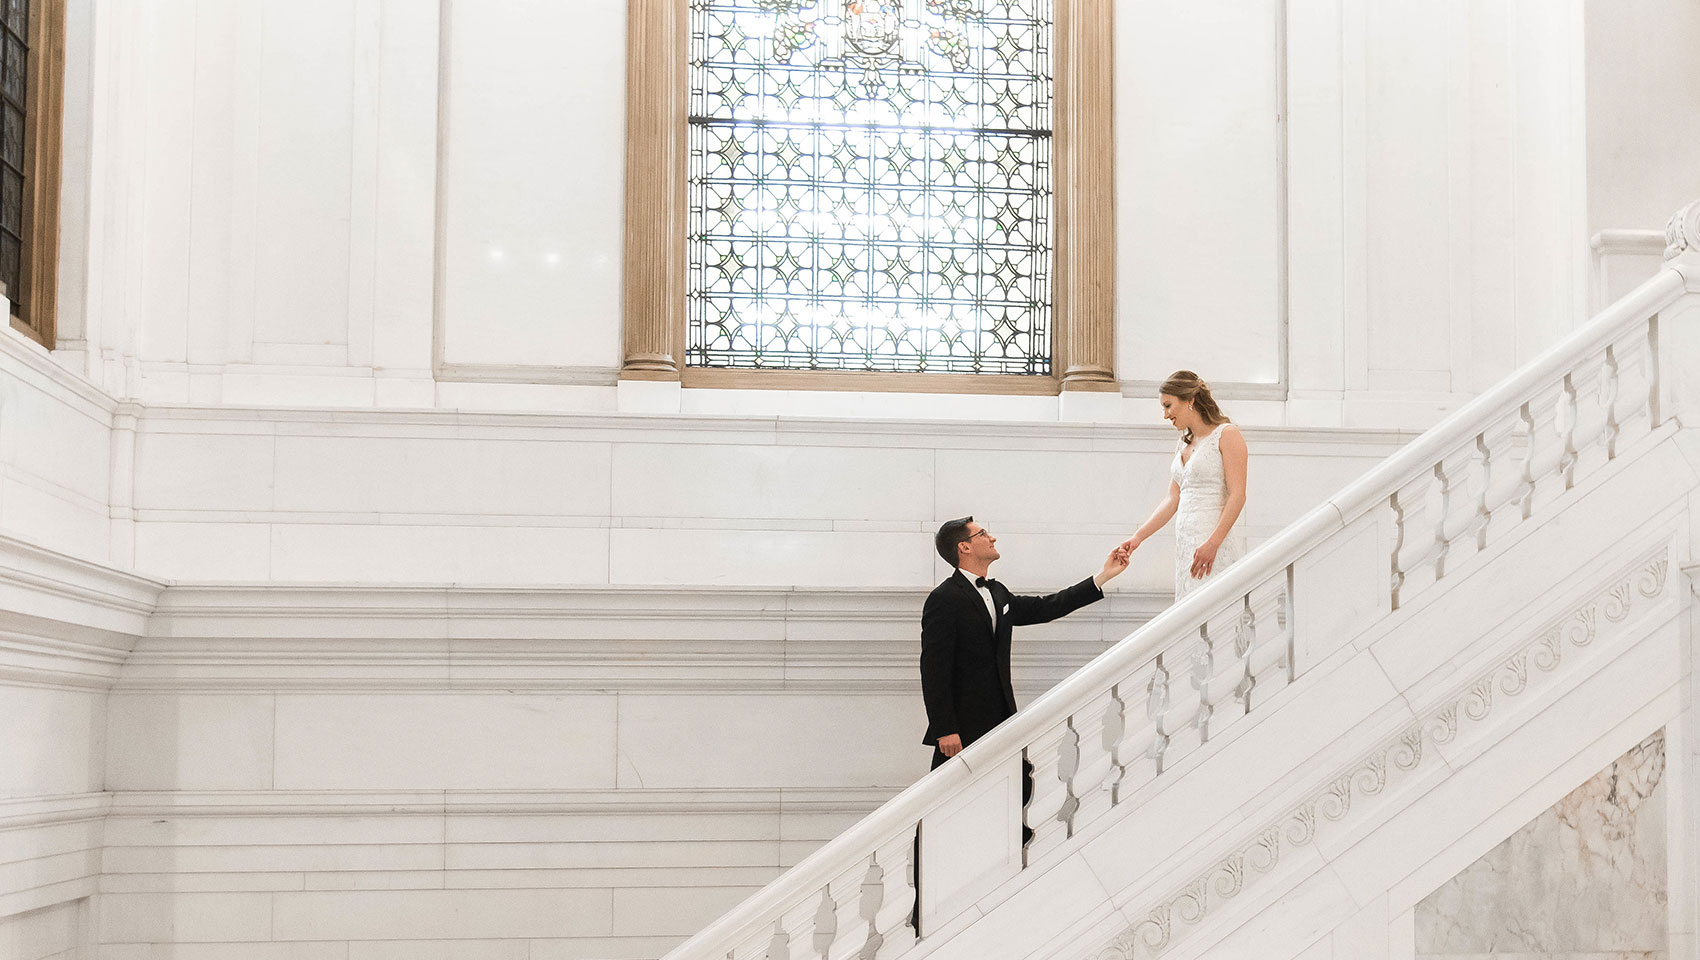 Holding hands on Staircase - JadeNikkolePhotography